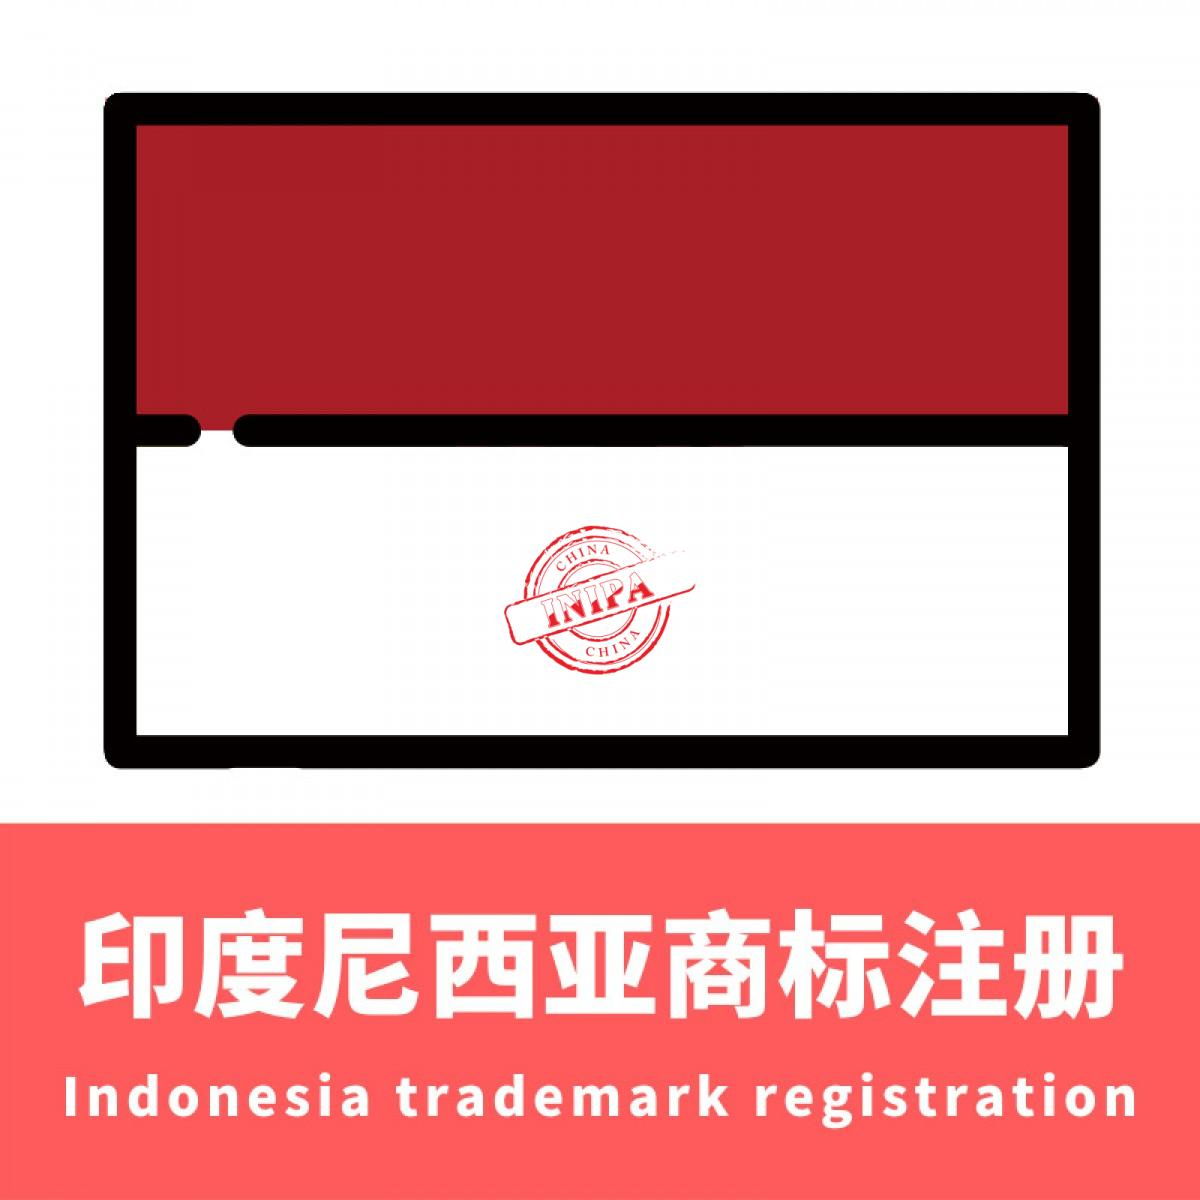 印度尼西亚商标注册/Indonesia trademark registration